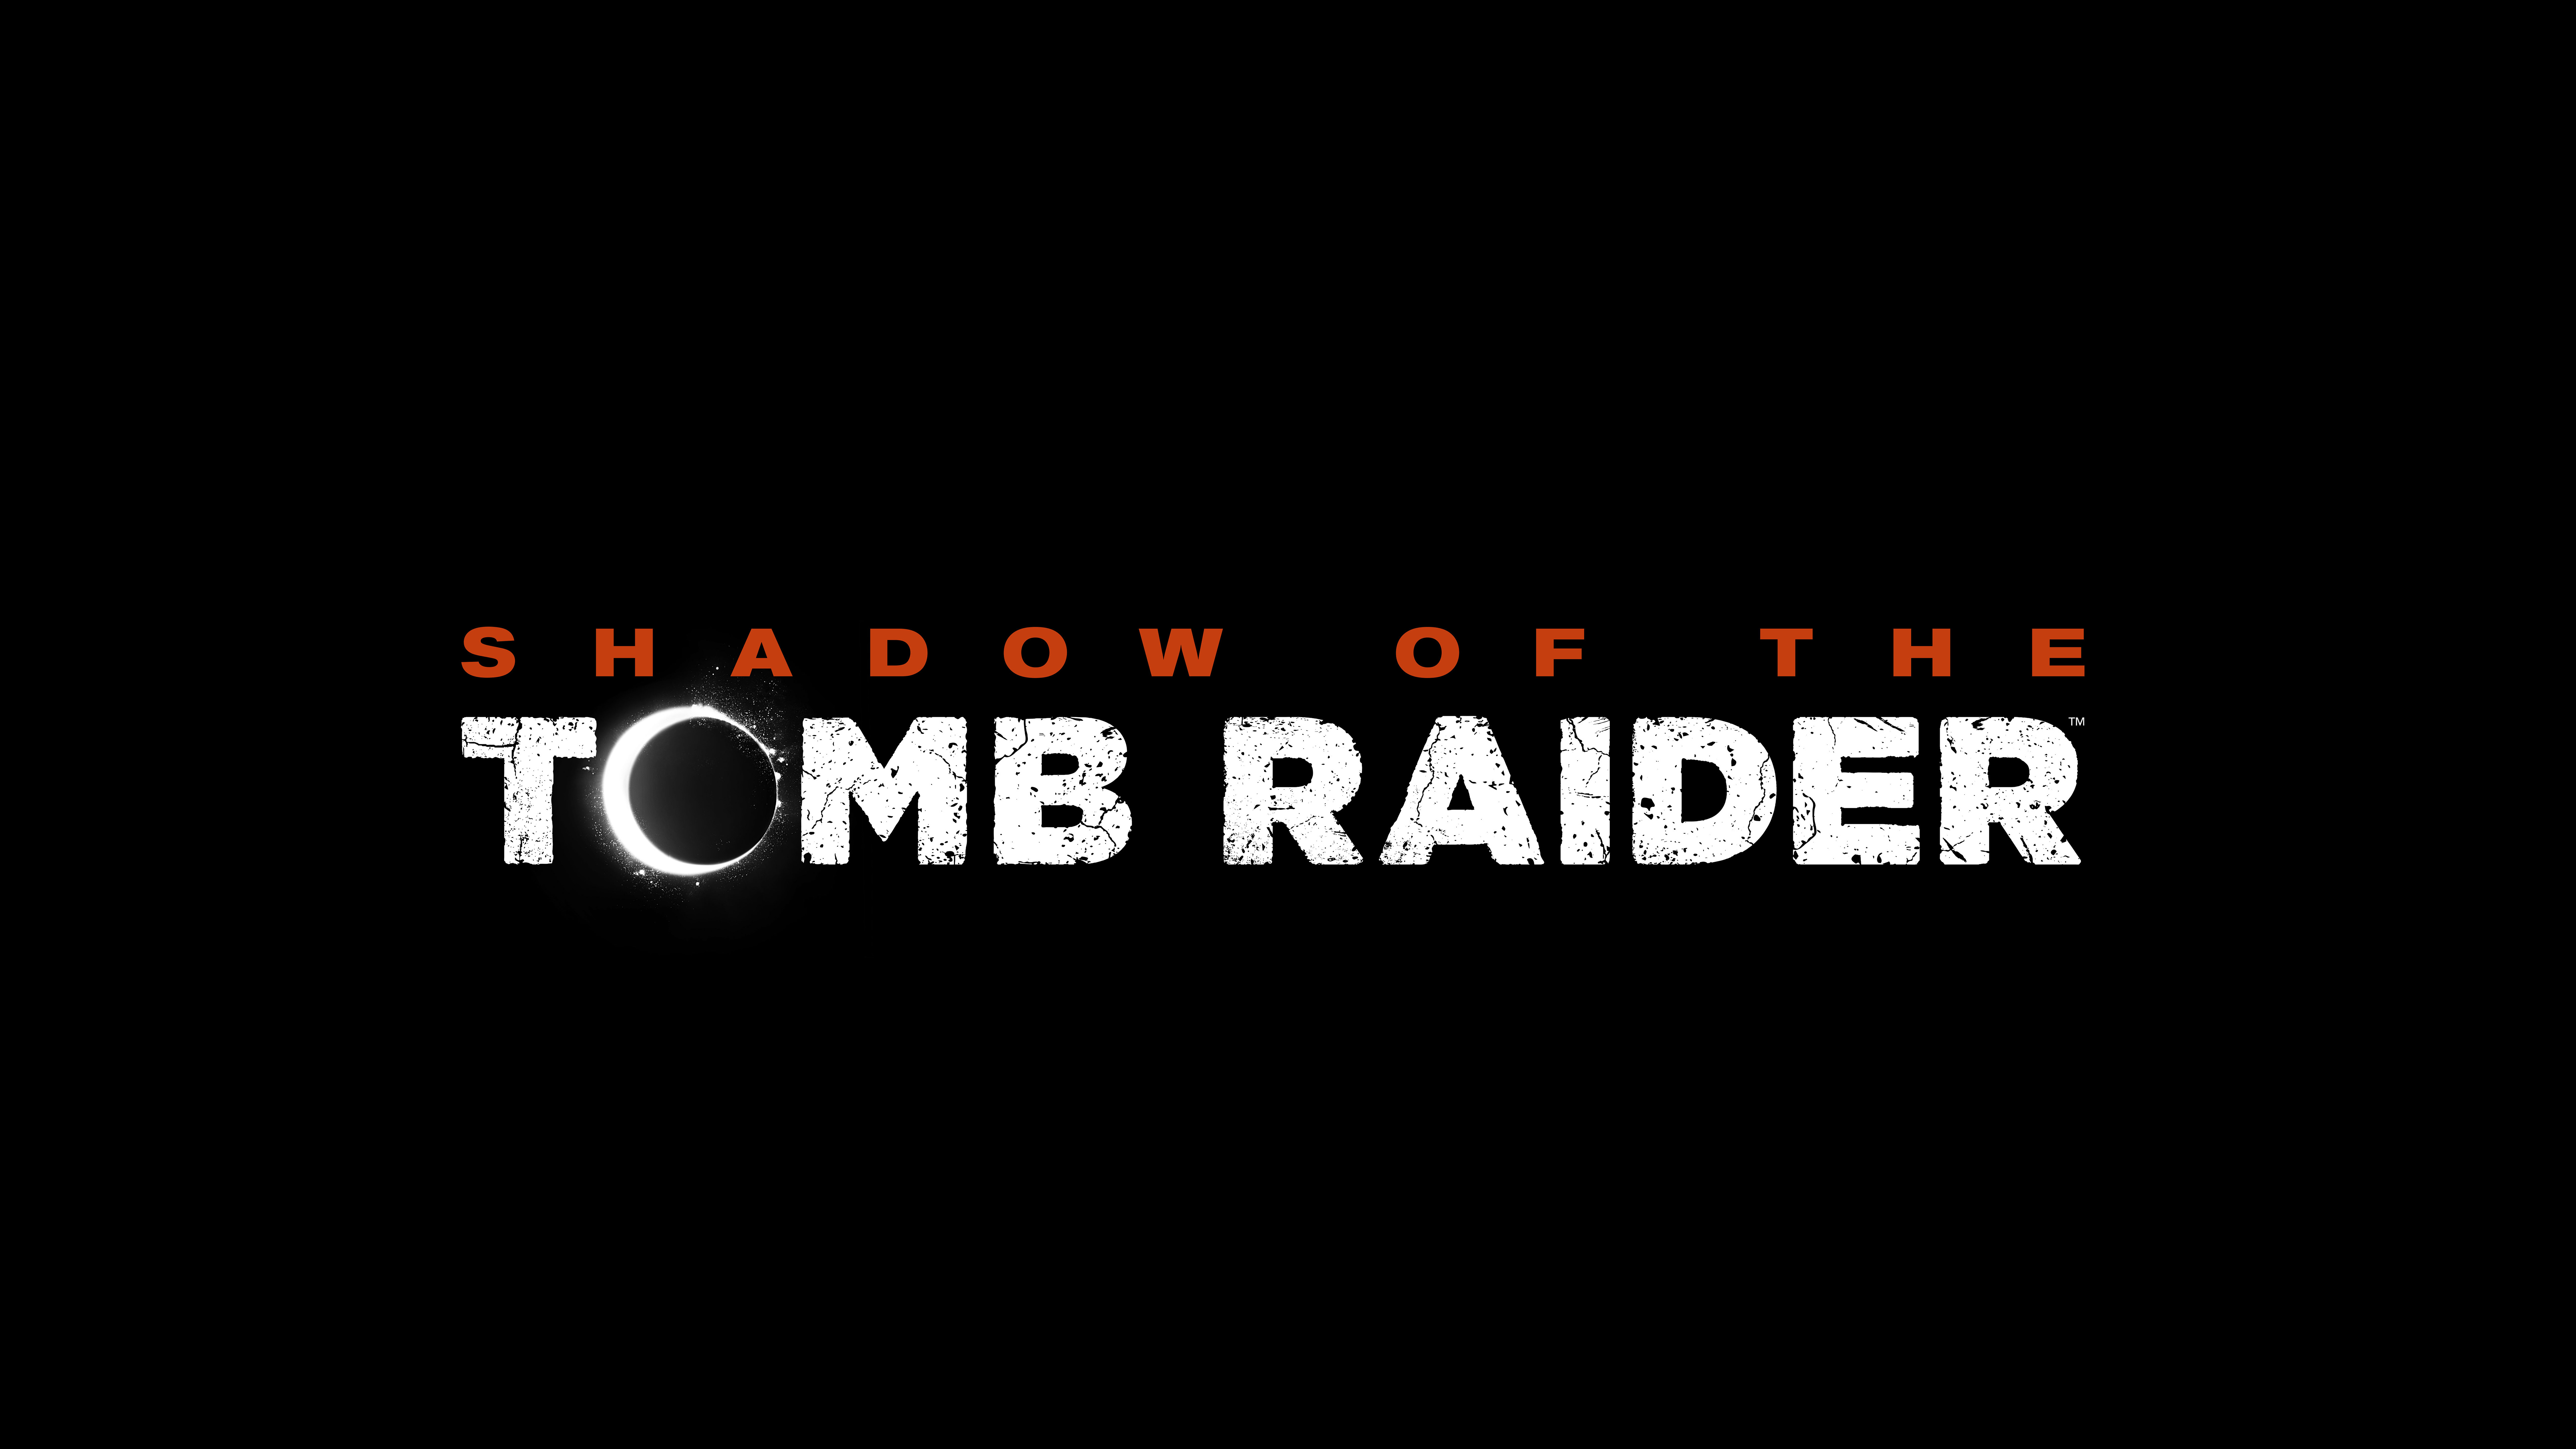 1600x900 Hd Wallpapers Cars Shadow Of The Tomb Raider 8k Hd Games 4k Wallpapers